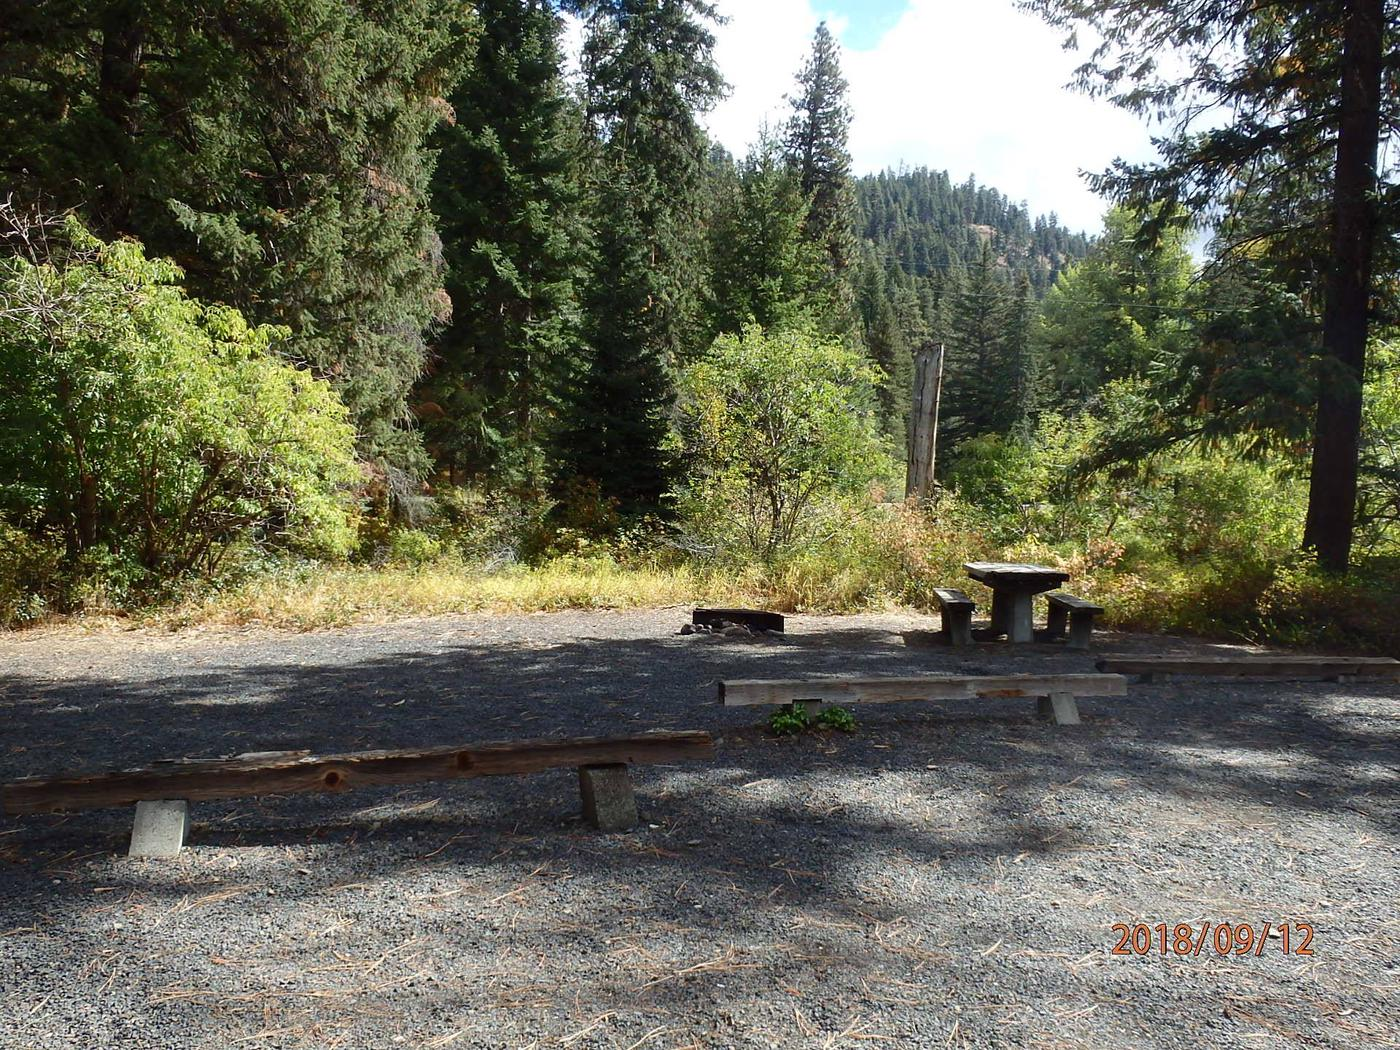 Little NachesSite offer parking for two vehicle or an RV